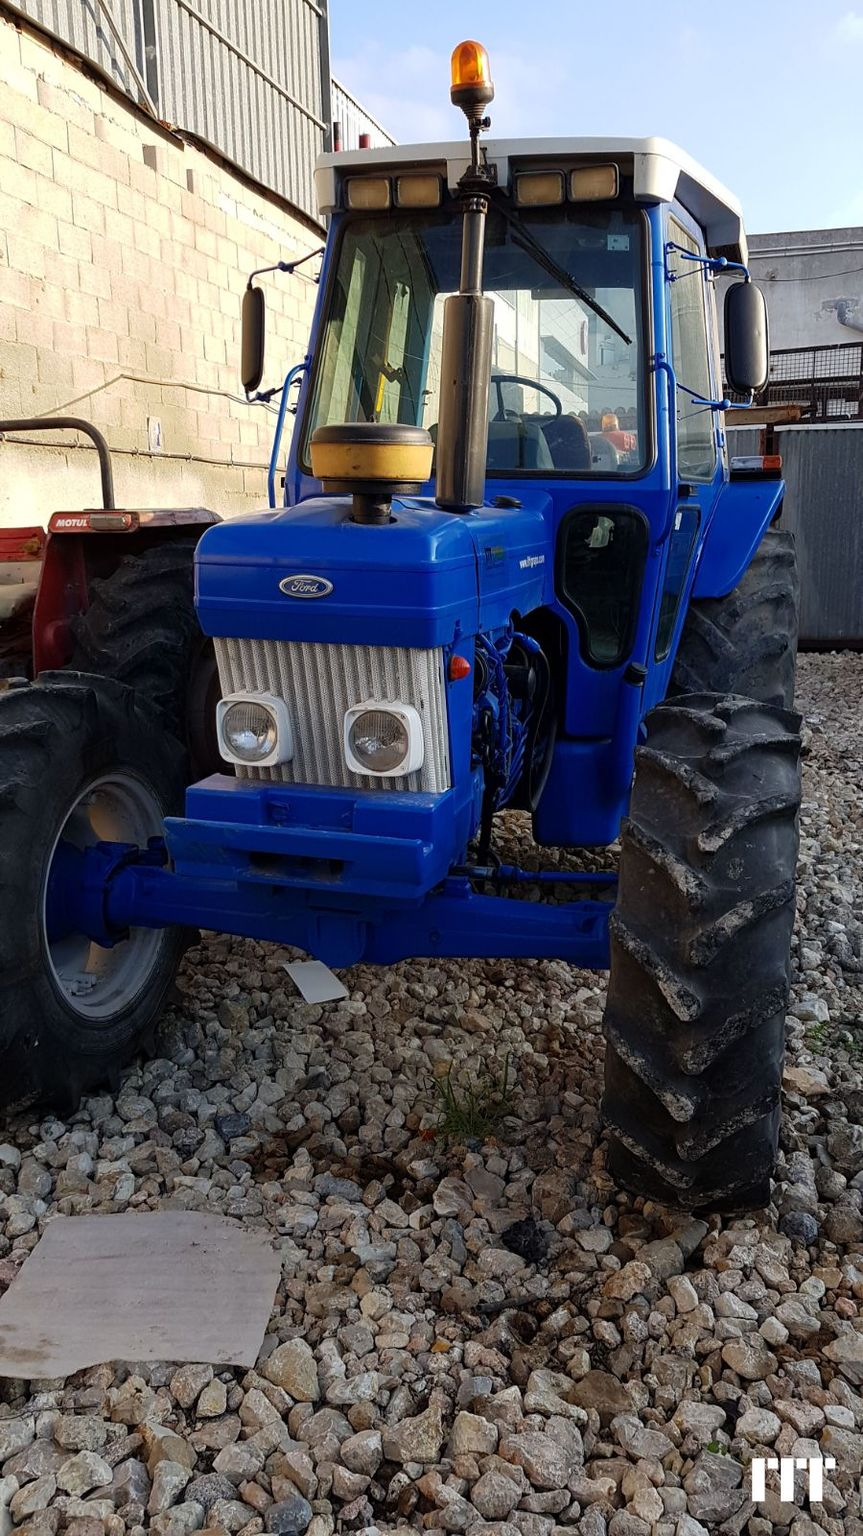 cb tractor fandom sale wiki latest ford wikia tractors construction for plant powered by